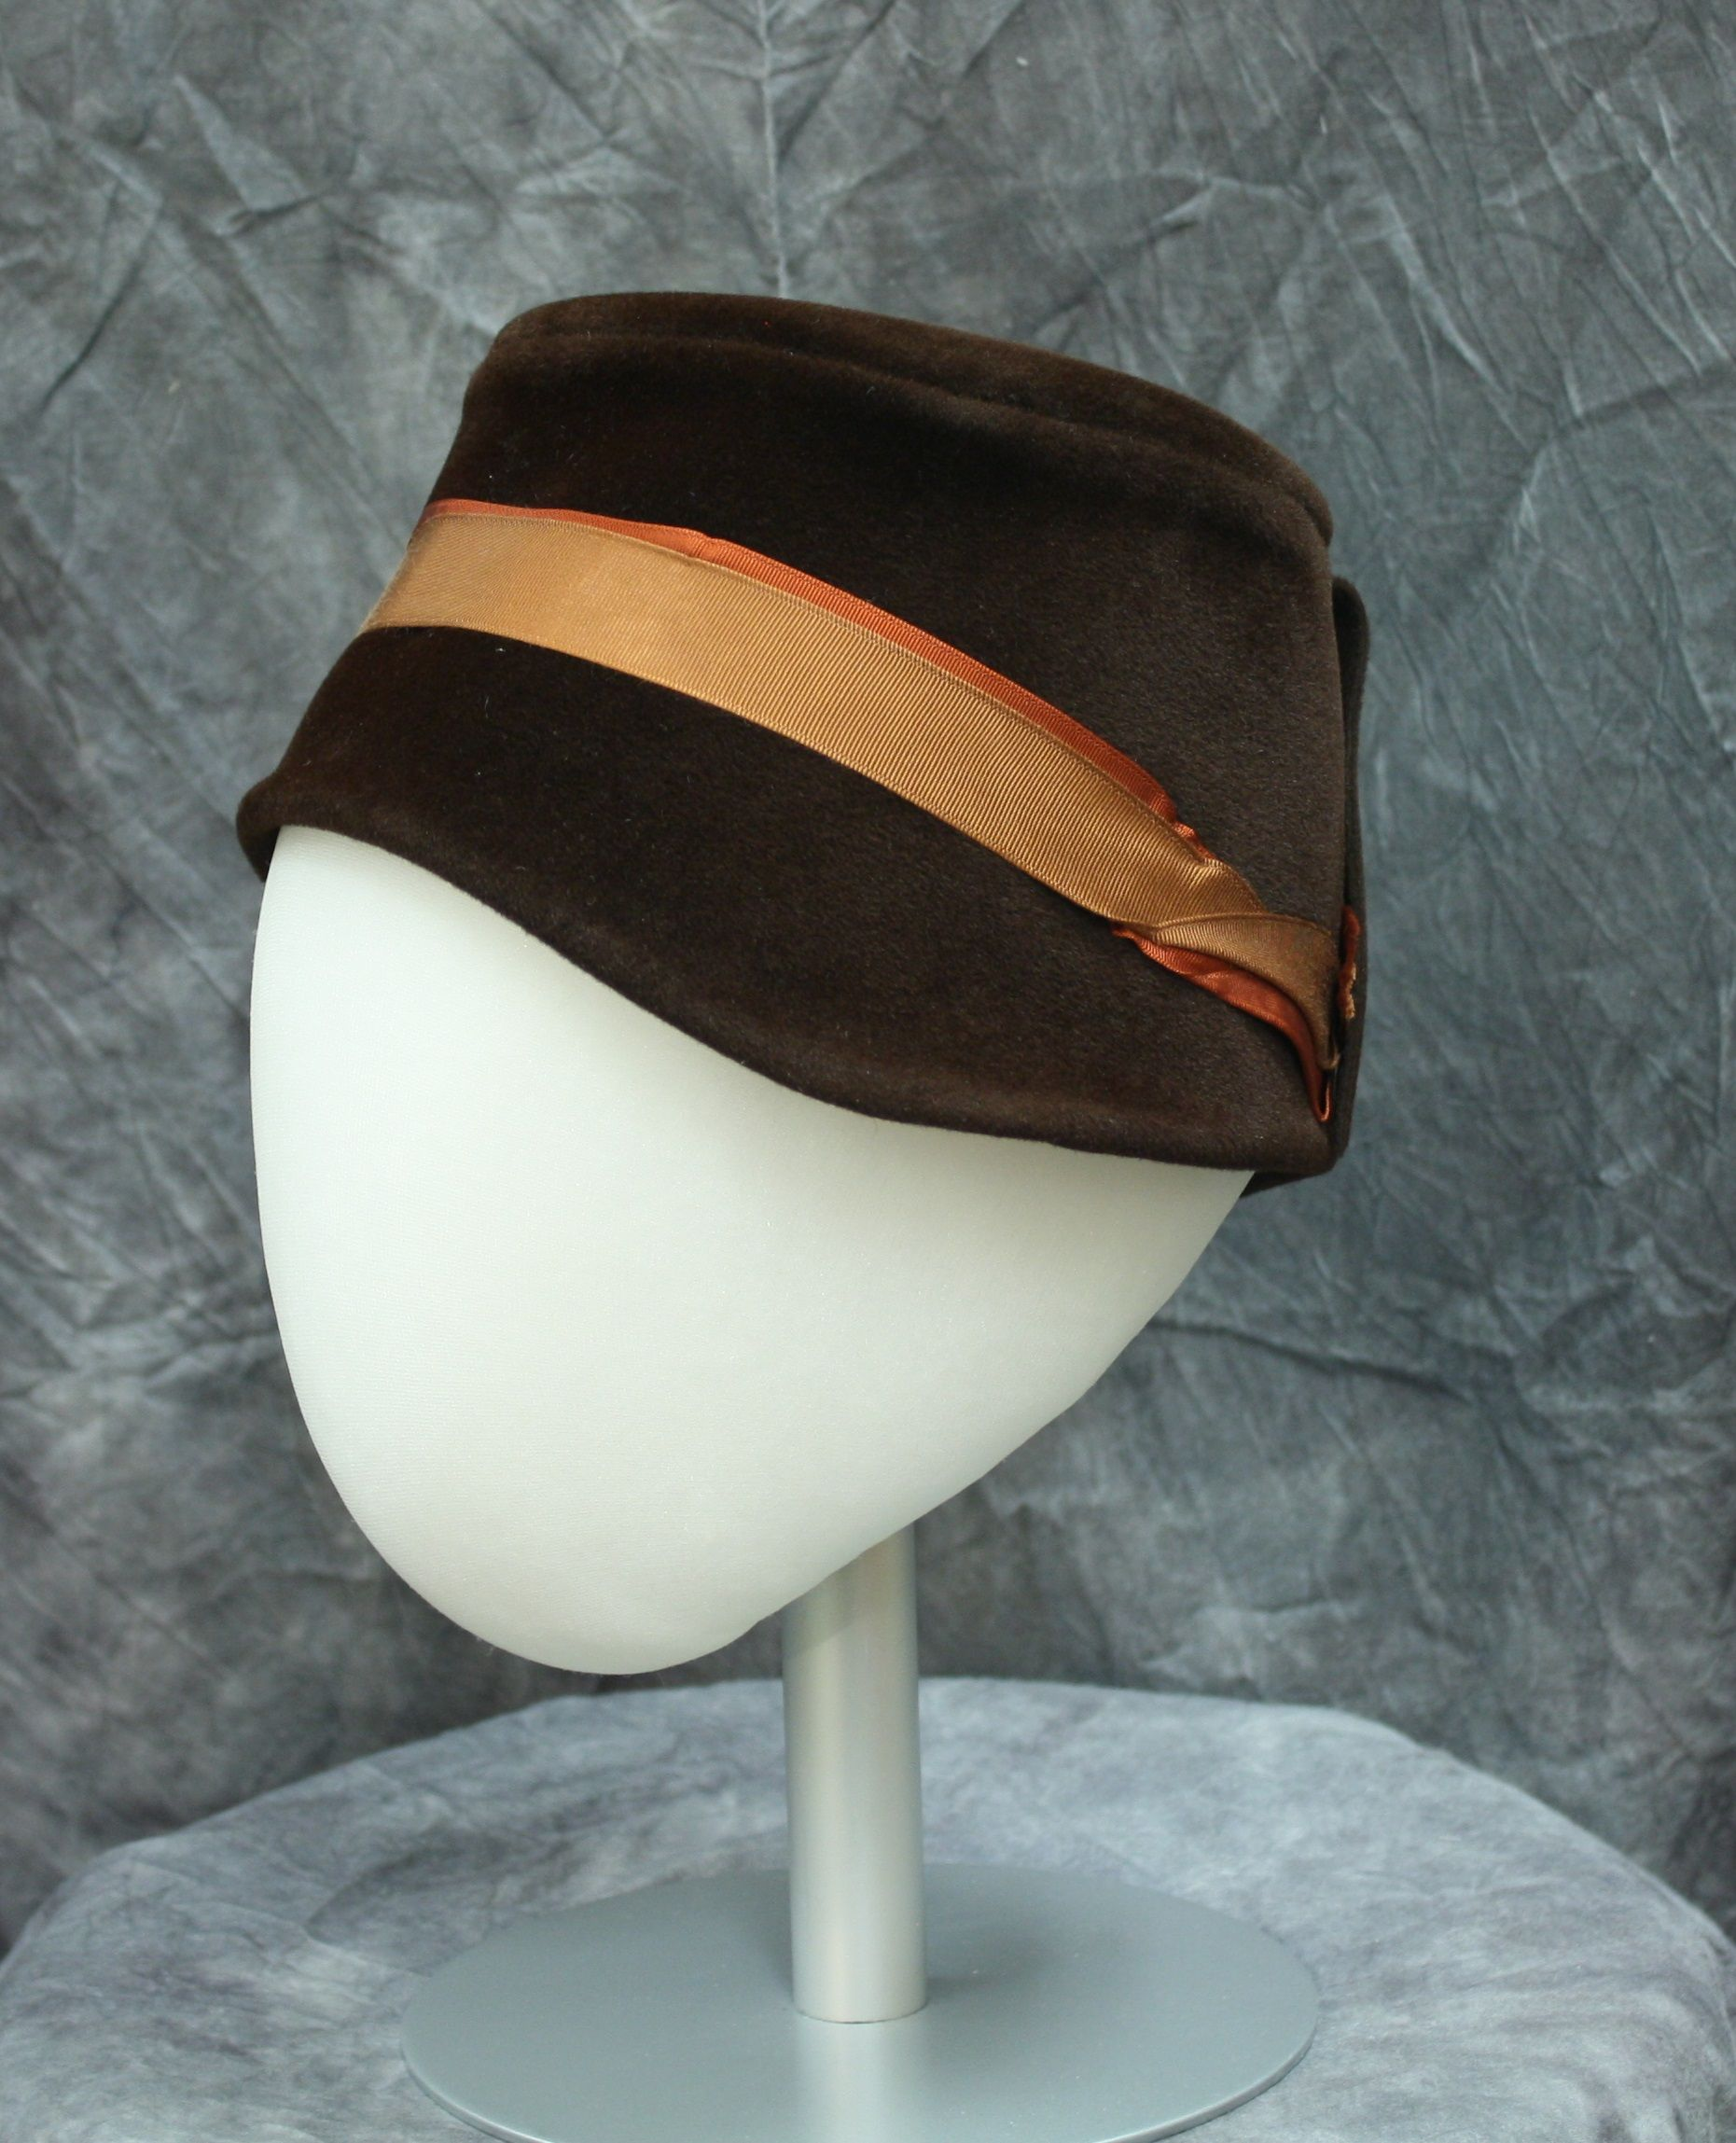 Cloche style hat of brown piled felt by Kohinoor/ Made in Austria, c.1925.